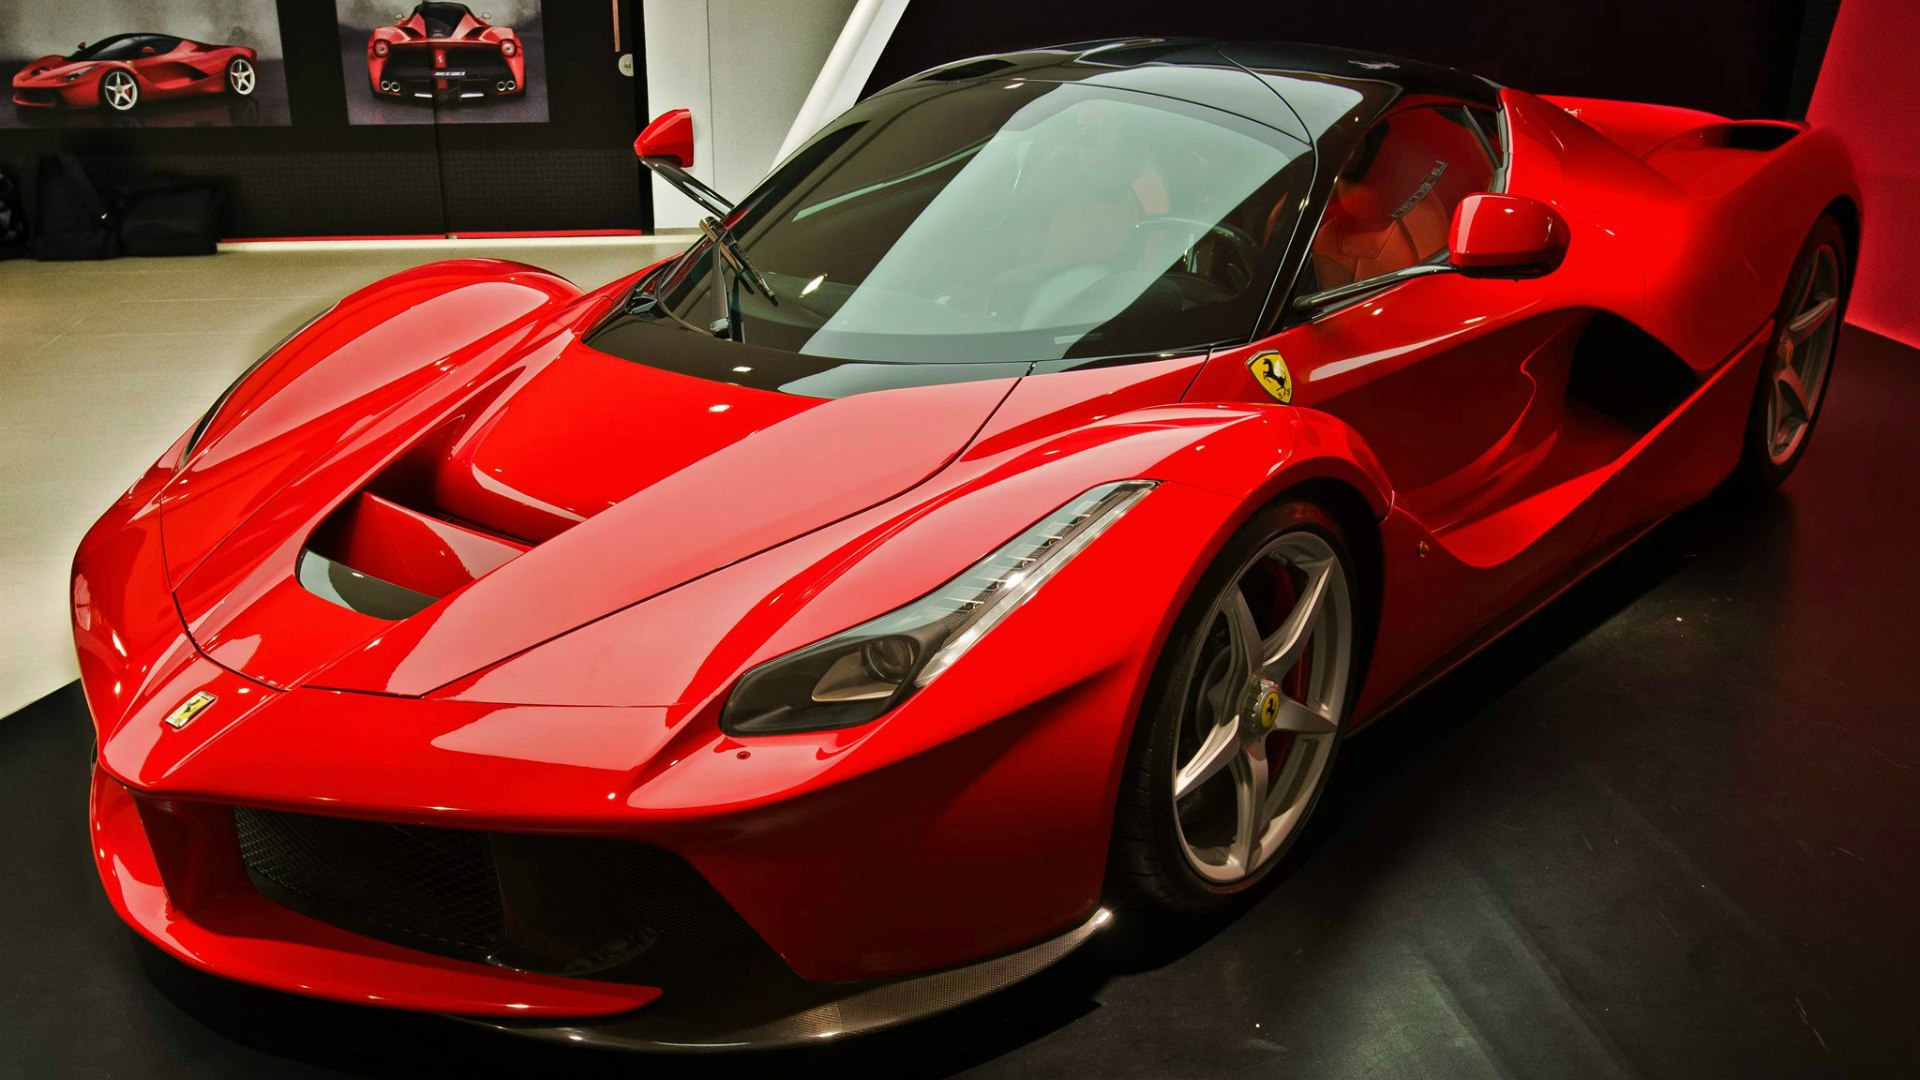 Drawn ferarri wallpaper Images wallpapers Red LaFerrari Ferrari